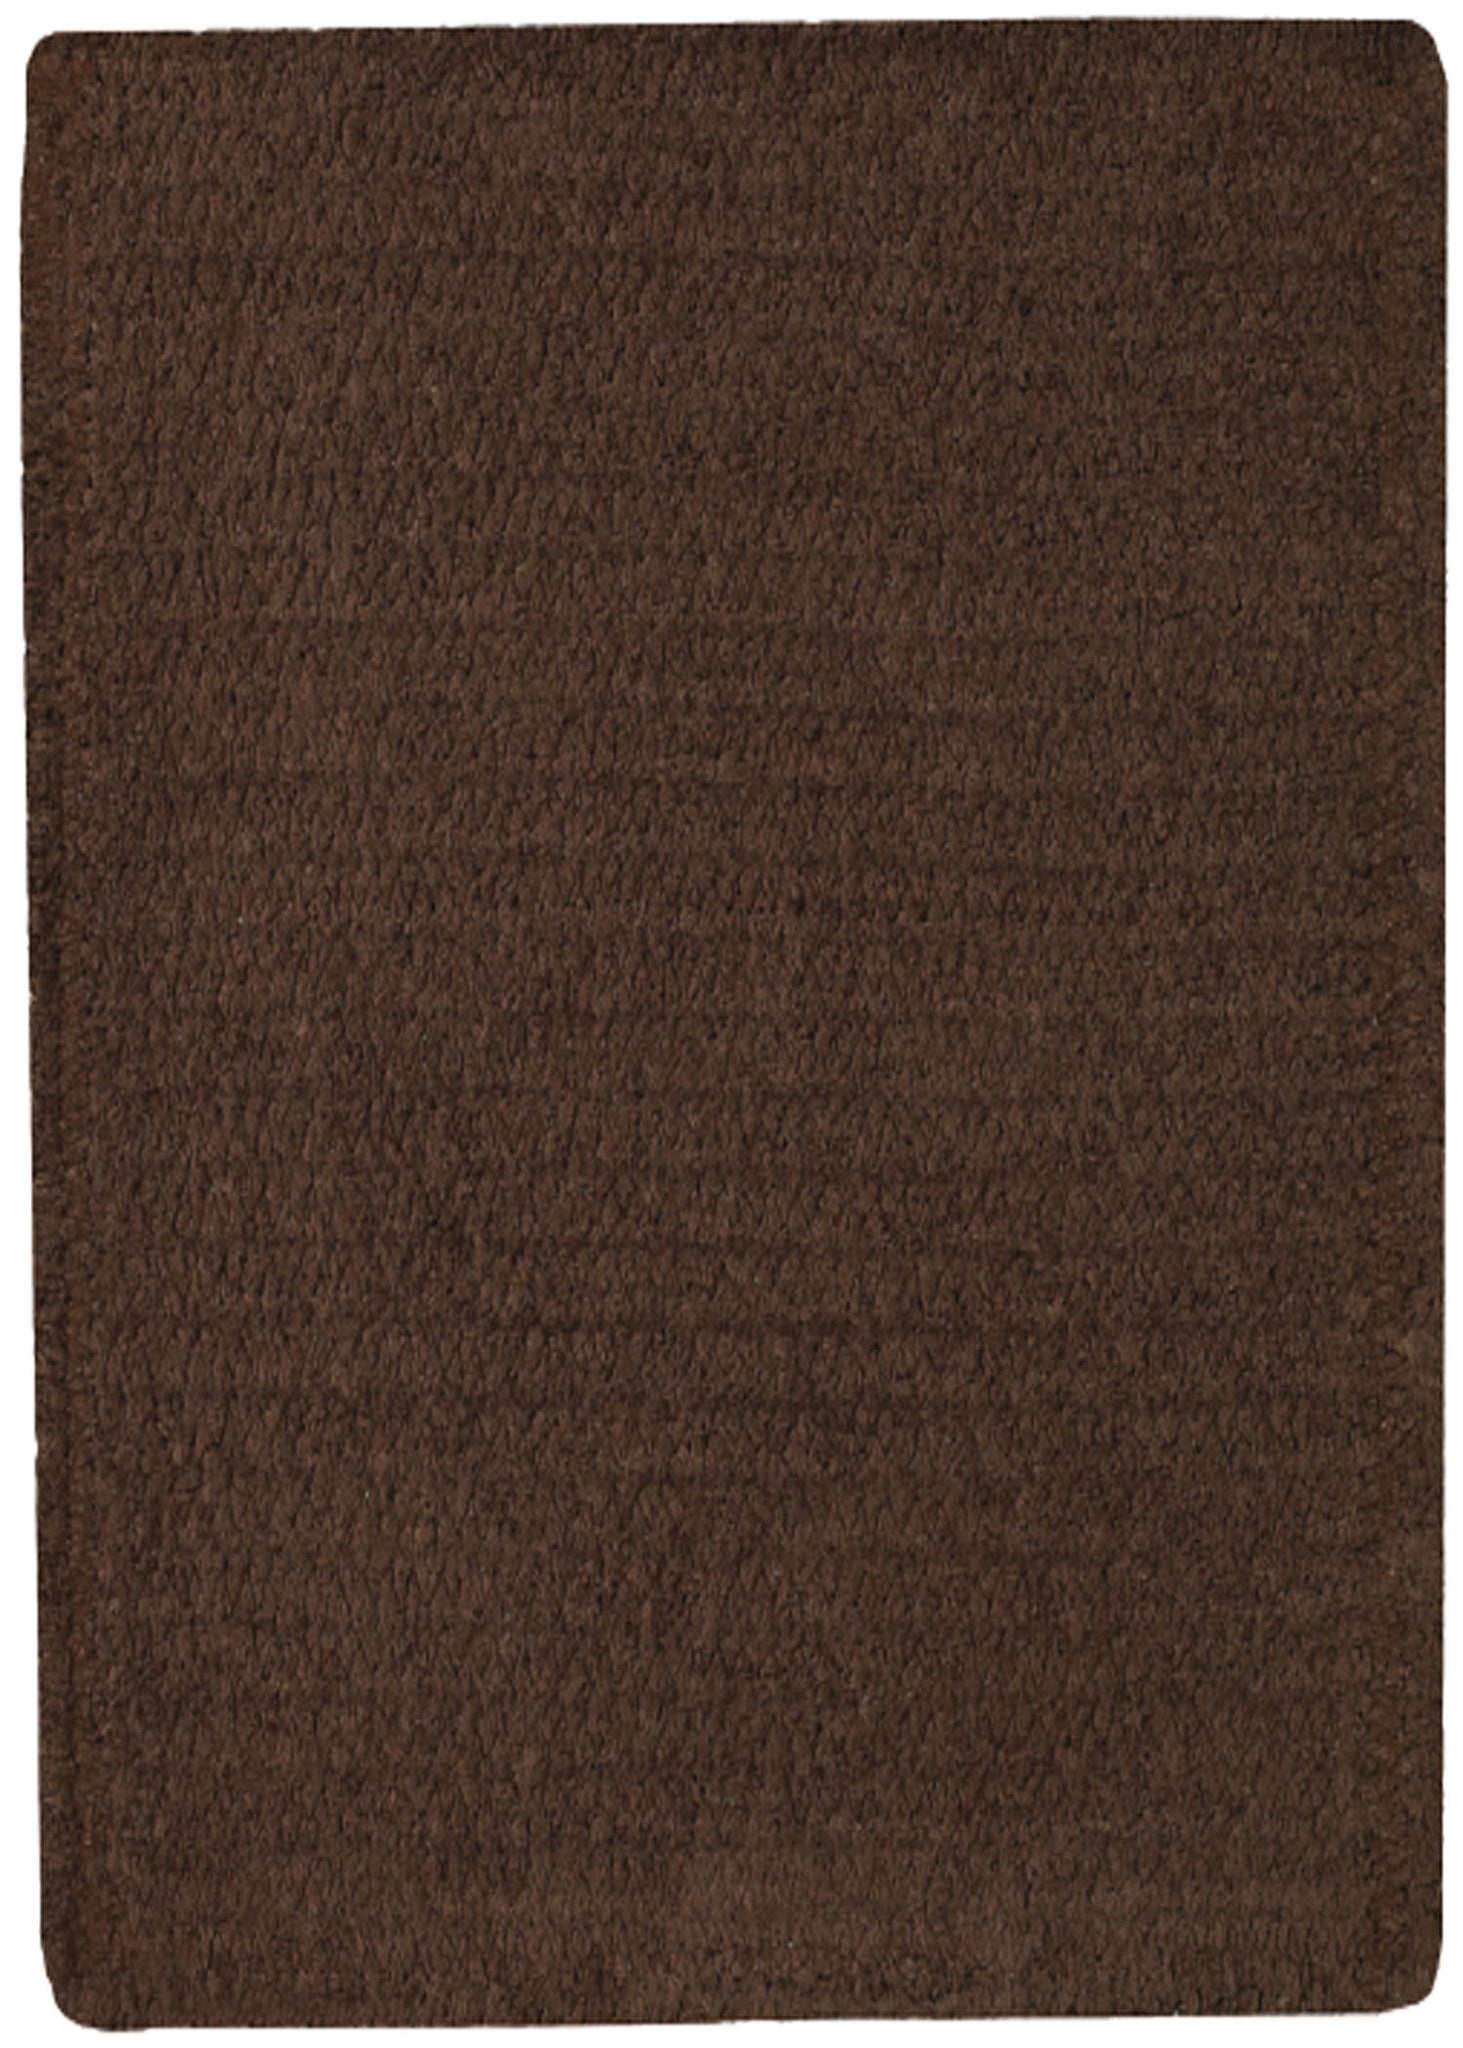 Capel Custom Classics 0325 Chocolate 770 Area Rug main image